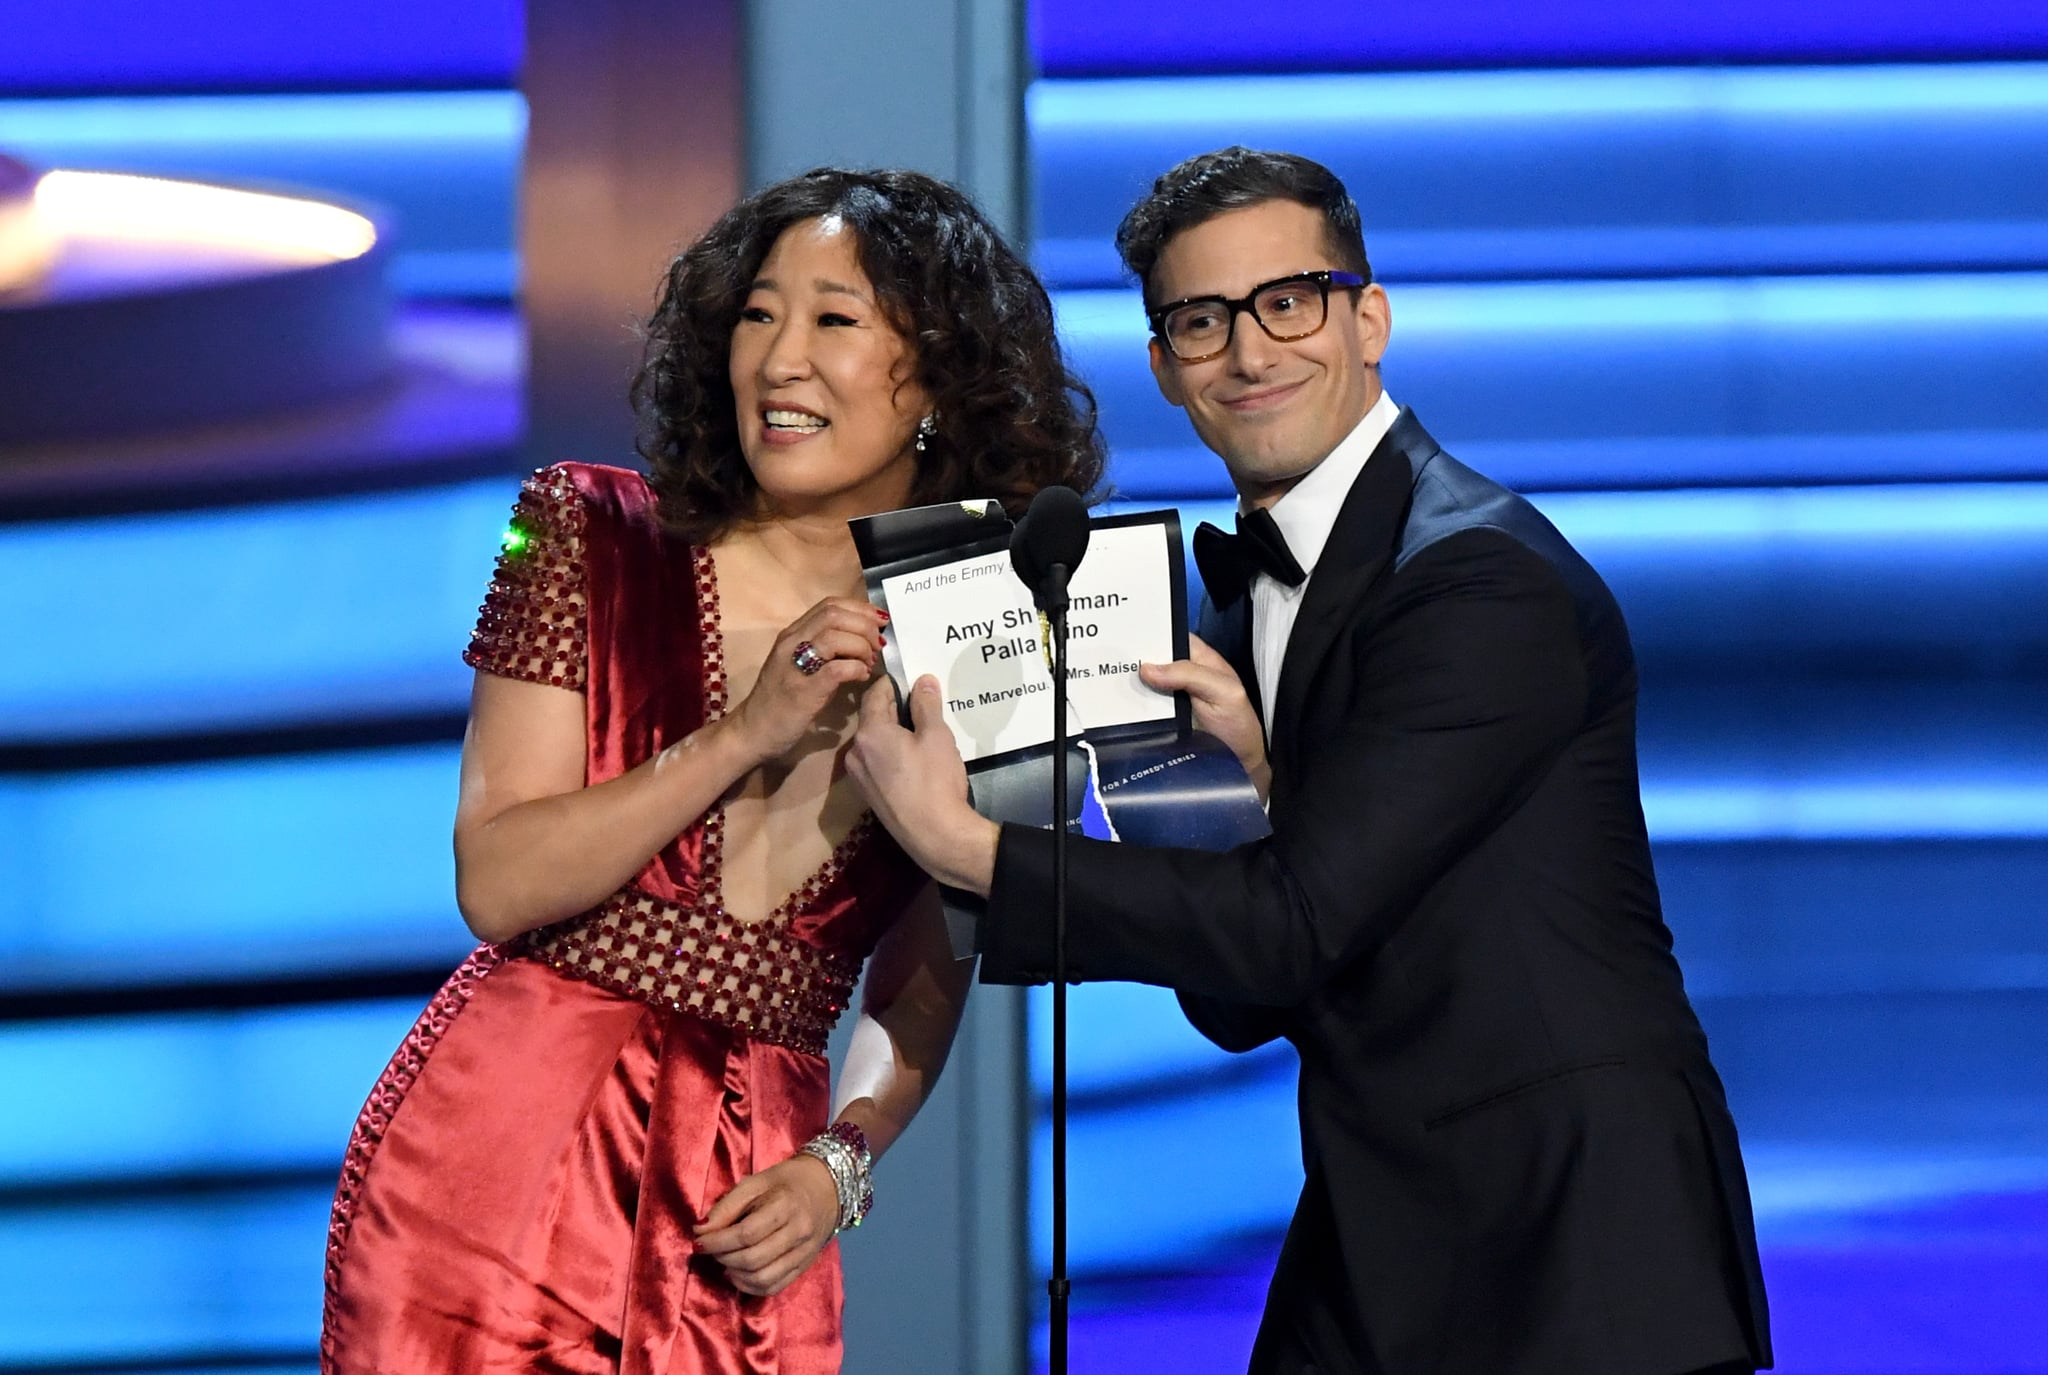 LOS ANGELES, CA - SEPTEMBER 17:  Sandra Oh (L) and Andy Samberg present the Outstanding Directing for a Comedy Series award onstage during the 70th Emmy Awards at Microsoft Theatre on September 17, 2018 in Los Angeles, California.  (Photo by Kevin Winter/Getty Images)